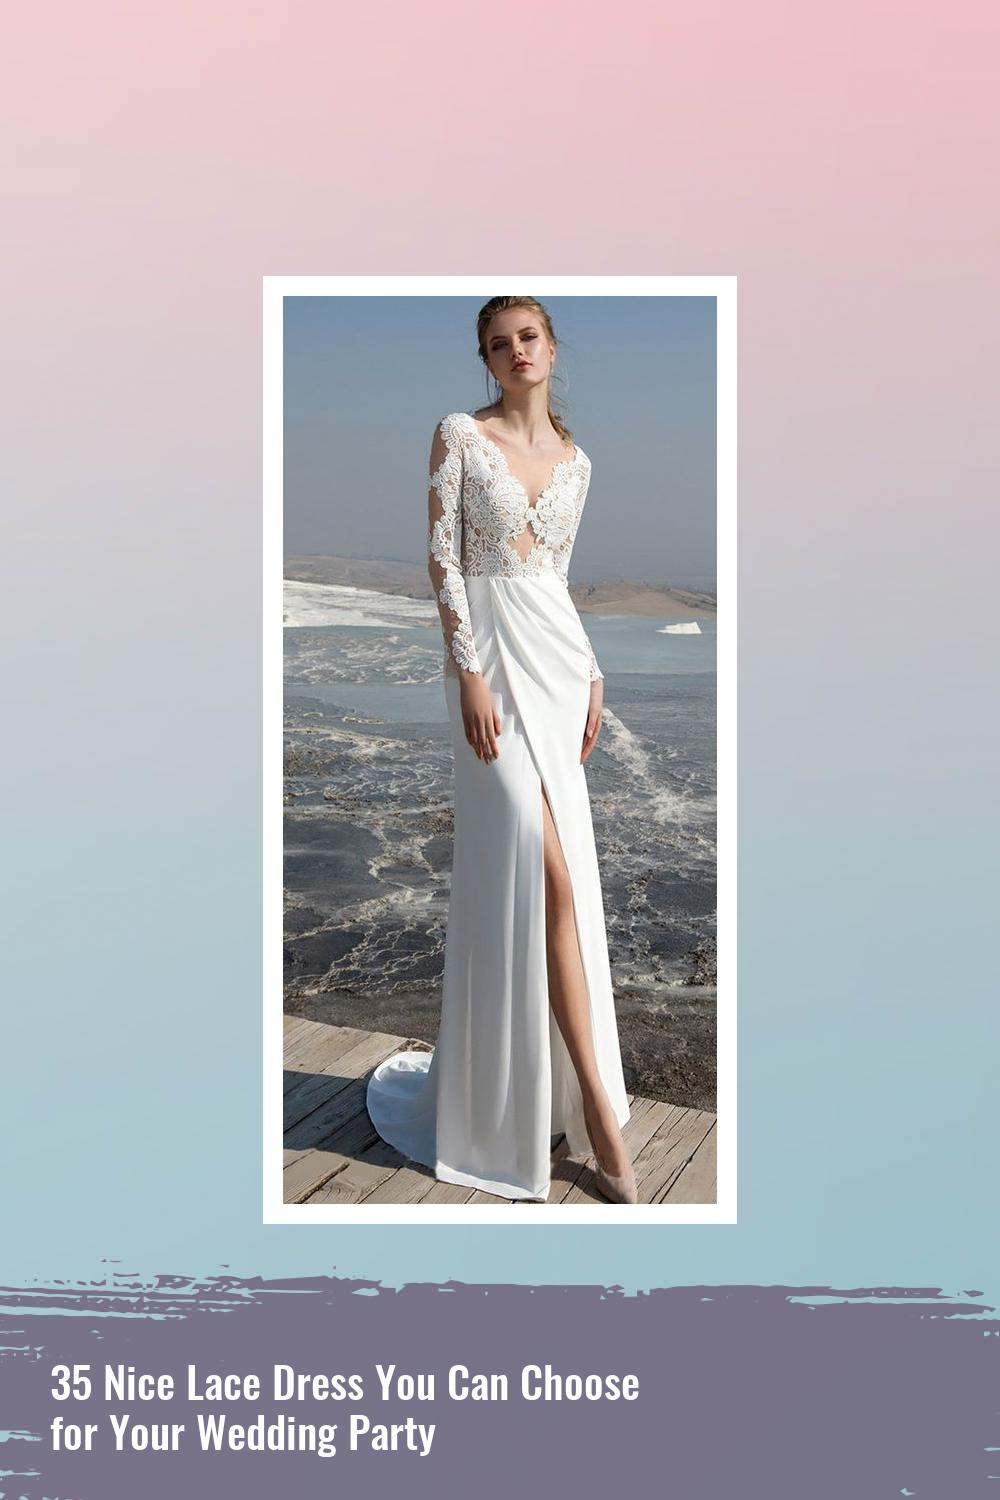 35 Nice Lace Dress You Can Choose for Your Wedding Party 30